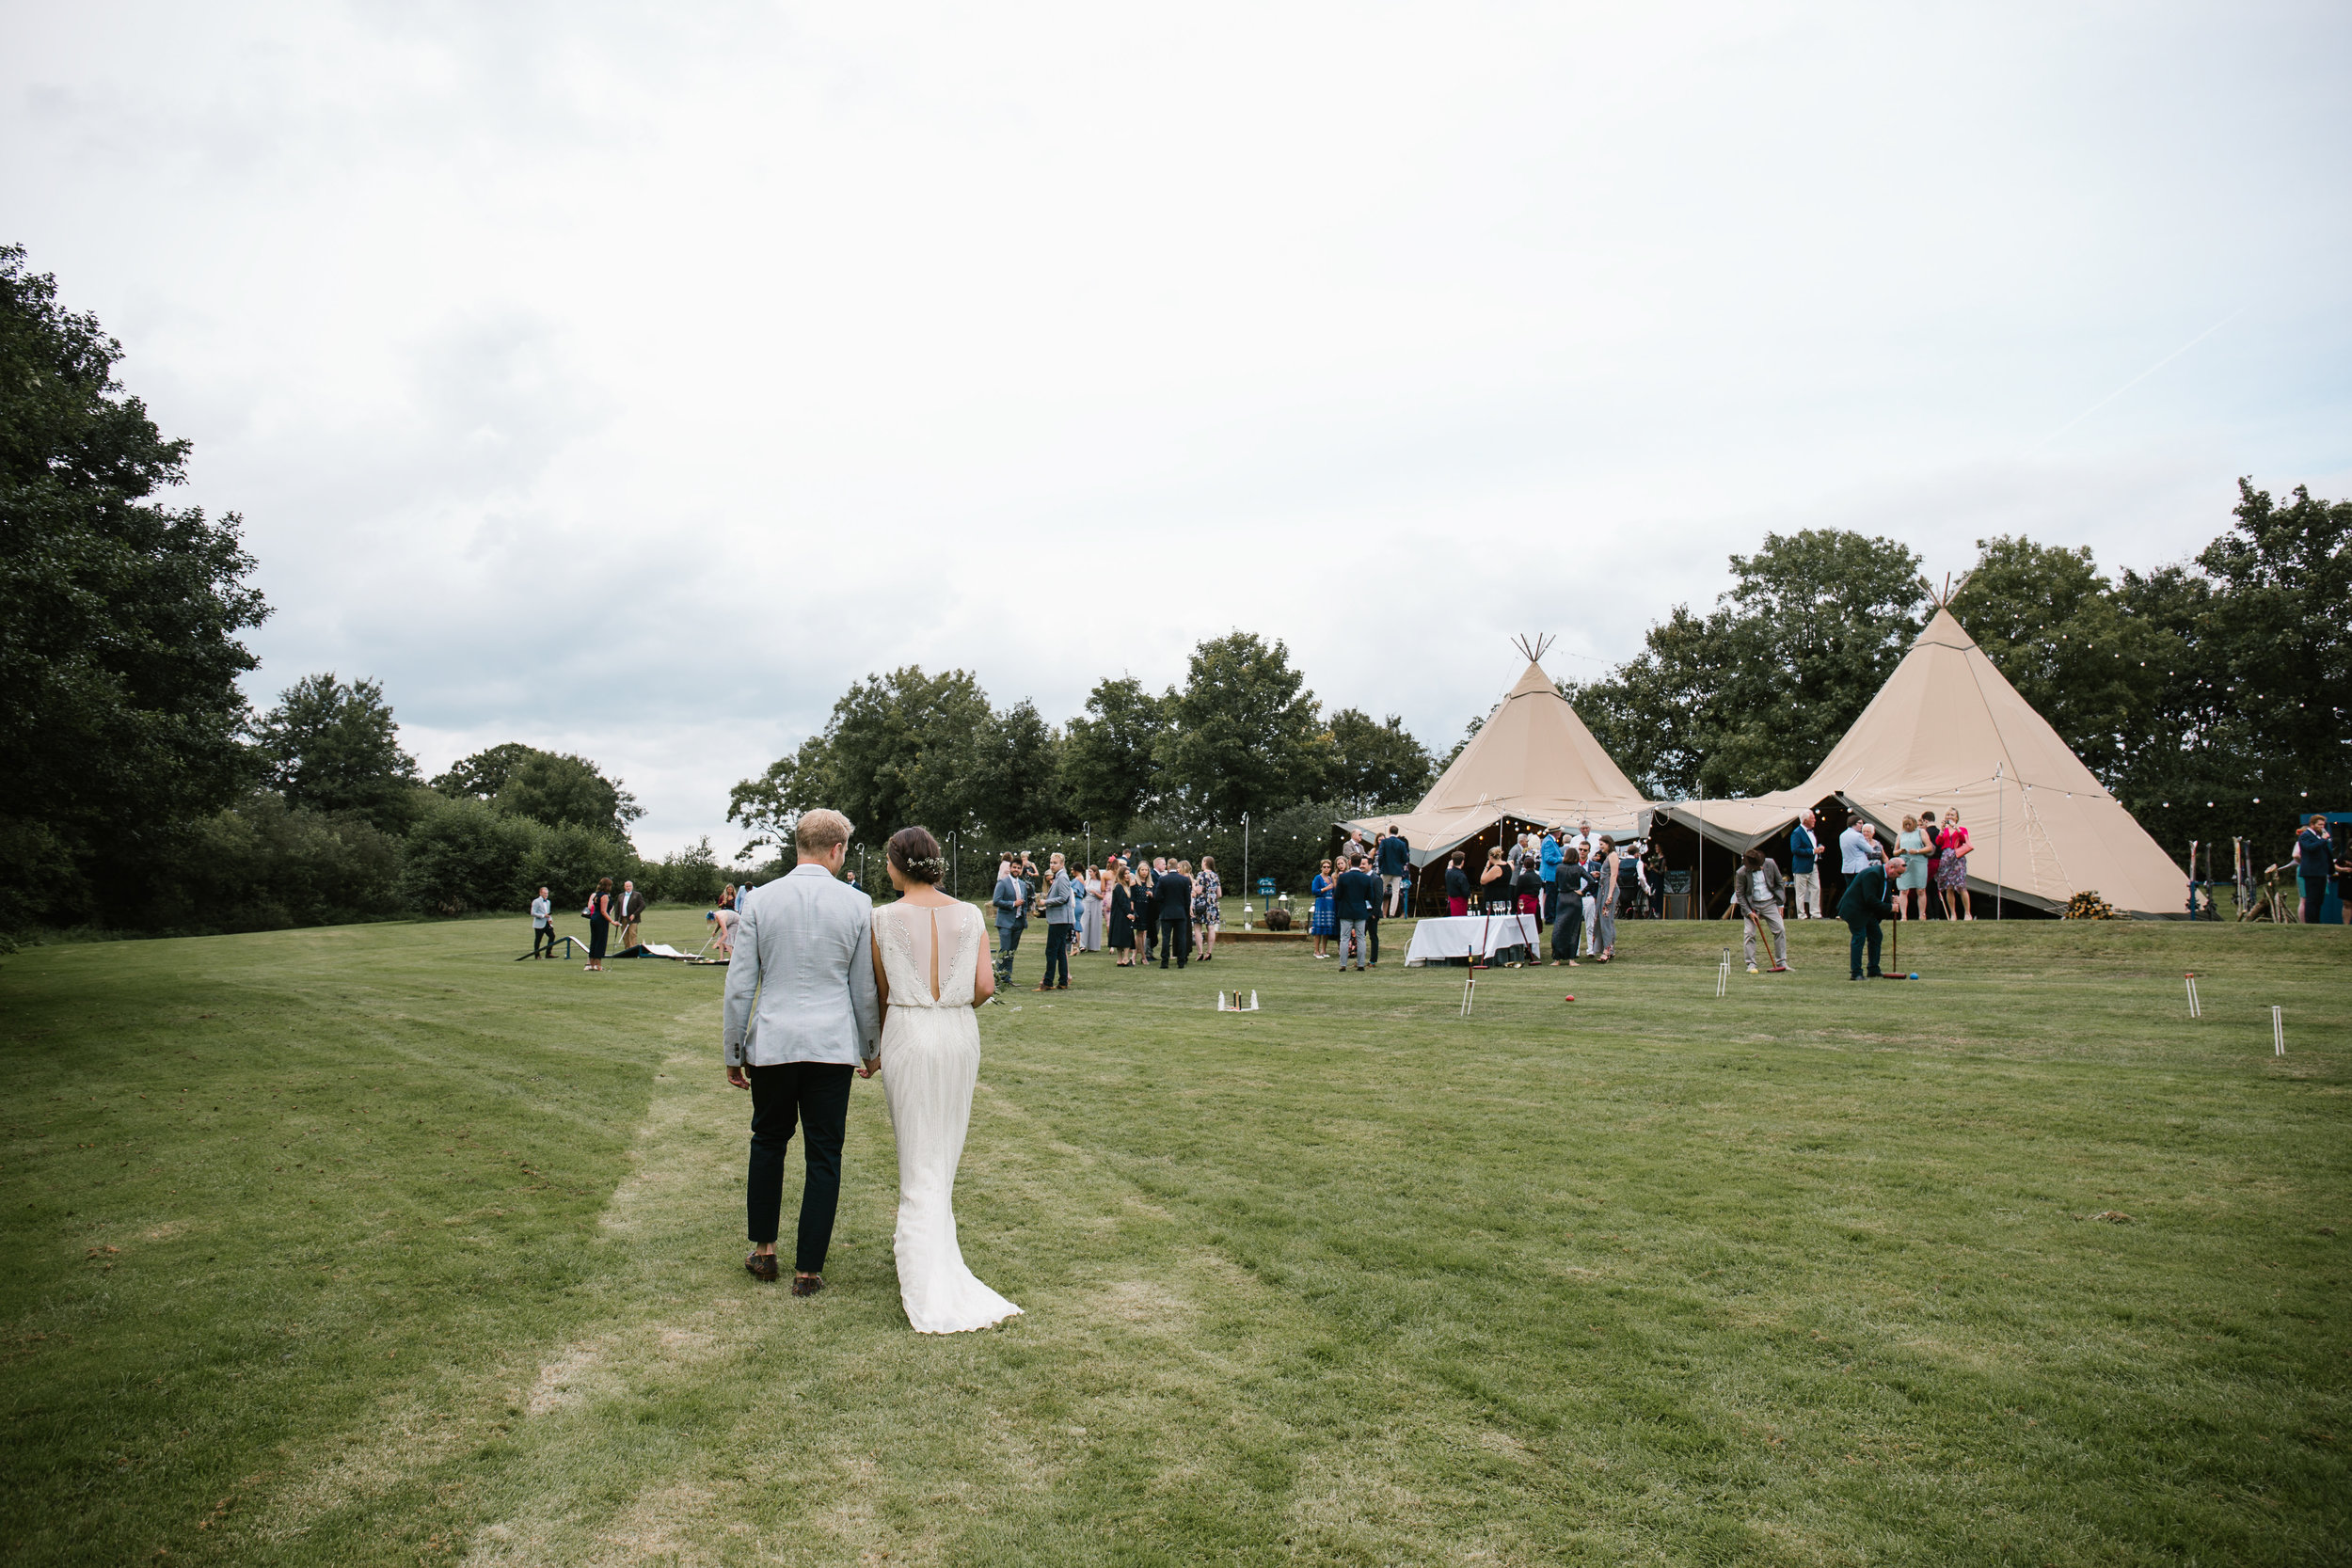 documentary shot of bride and groom walking back to their tipi with all their wedding guests after their outdoor wedding ceremony